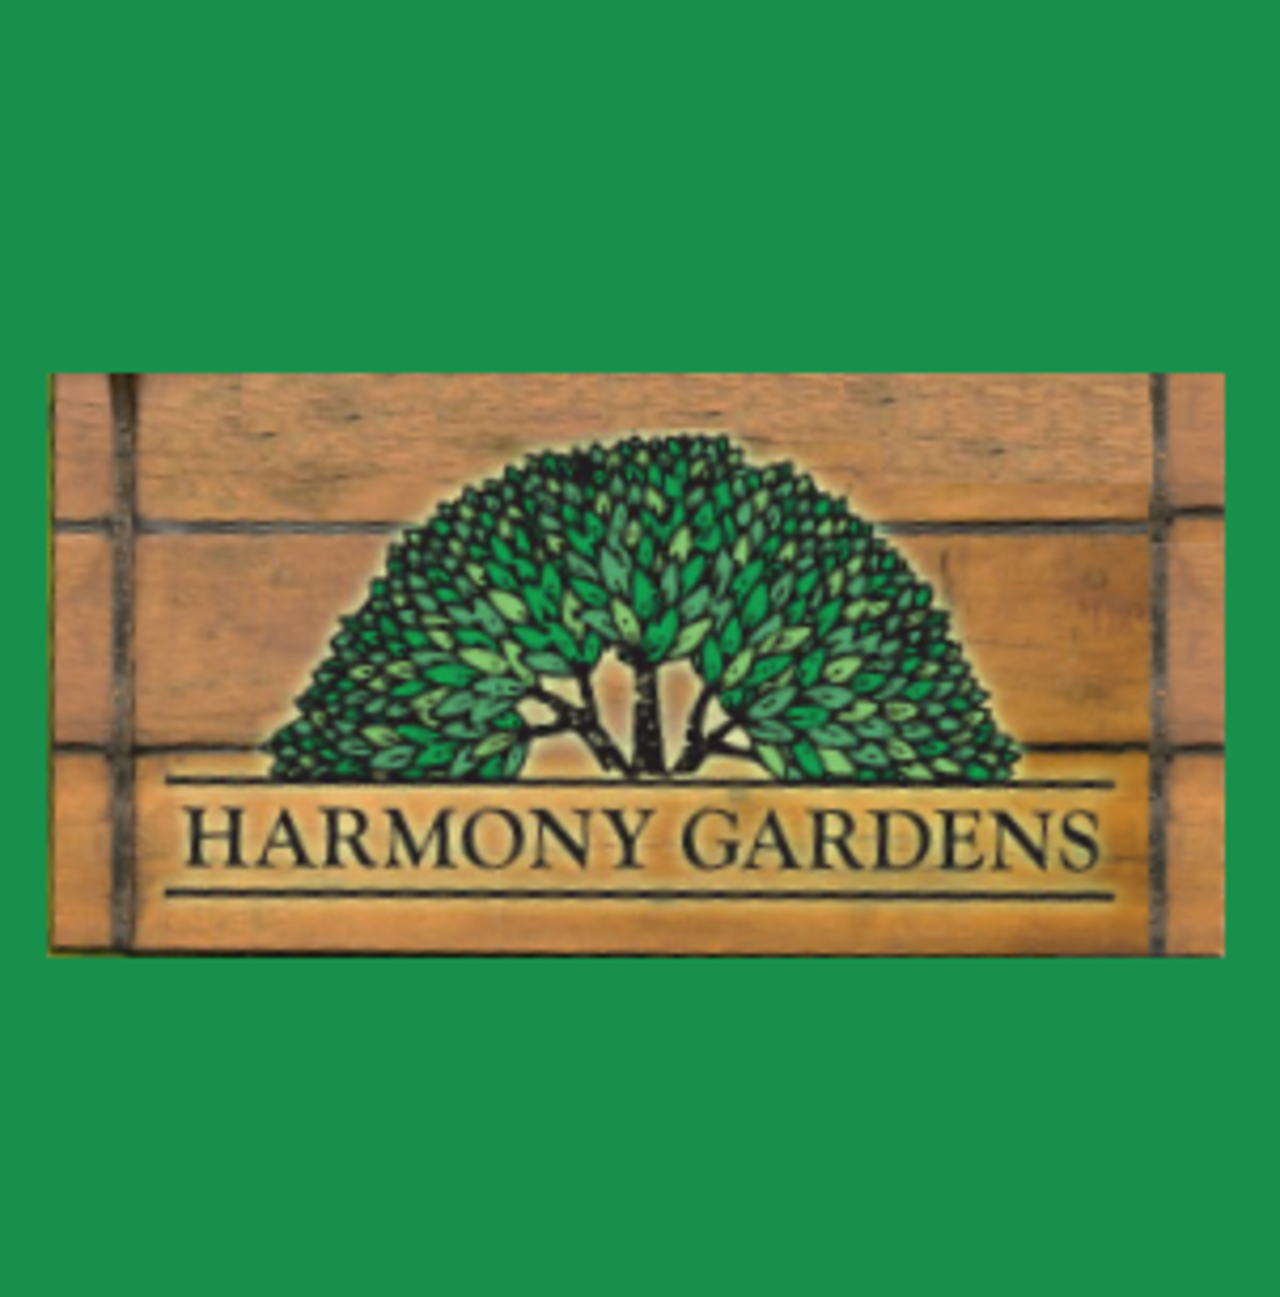 Harmony Gardens - Shopping - Lawn and Garden Supplies in Fort Collins CO